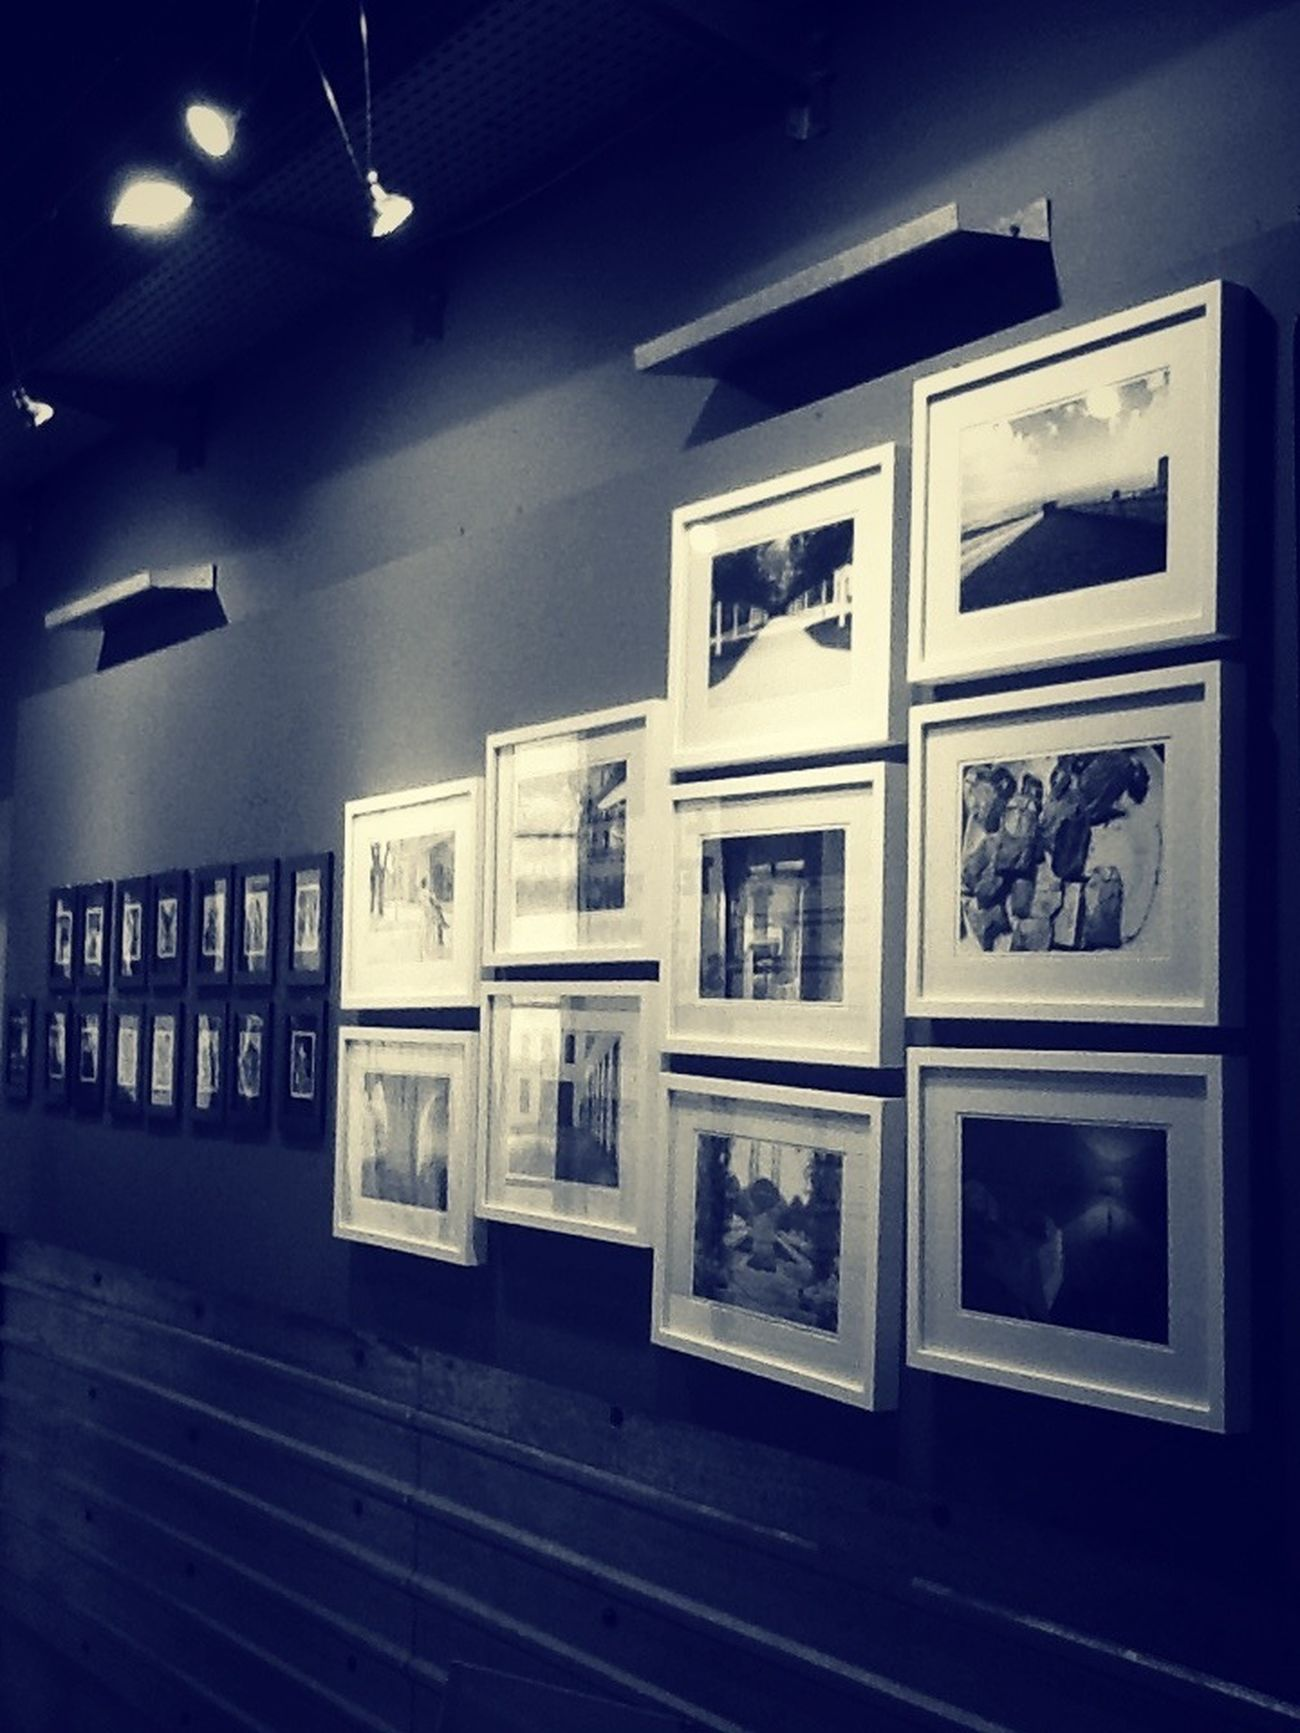 Sharing My Photos At An Exhibition Exposition Blackandwhite Photography